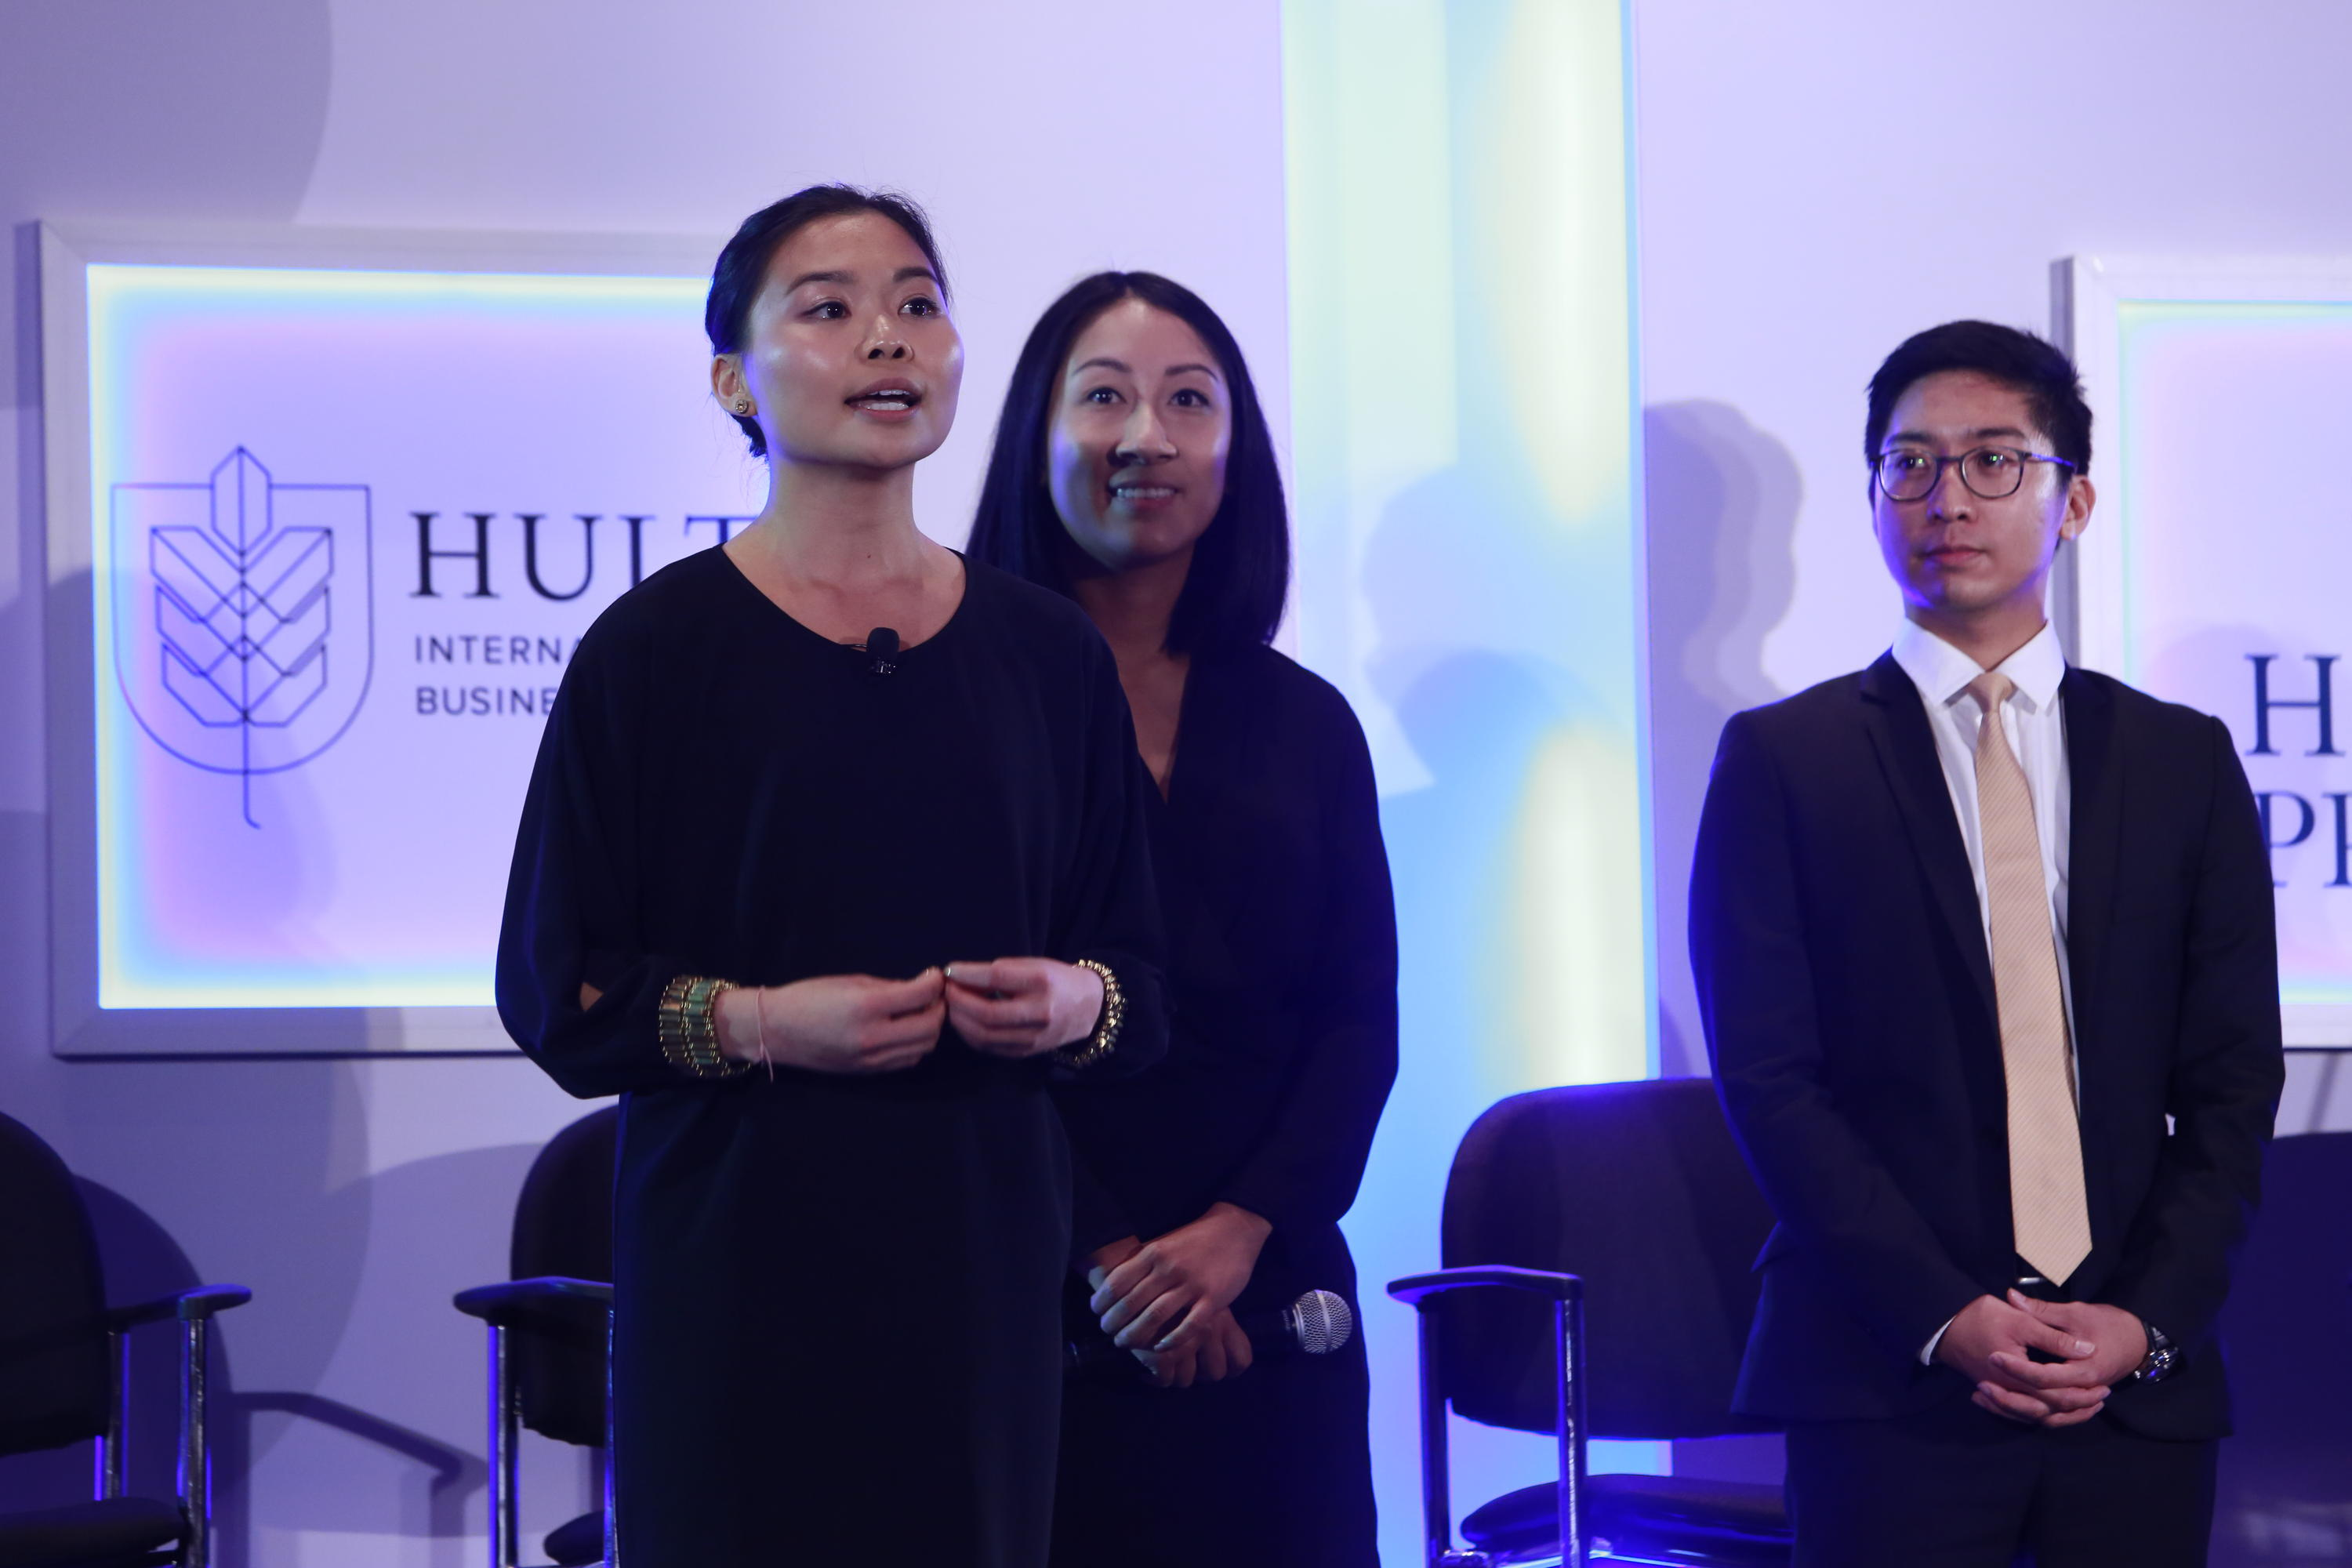 Jade Choy from EPOCH presenting at the Hult Prize competition.